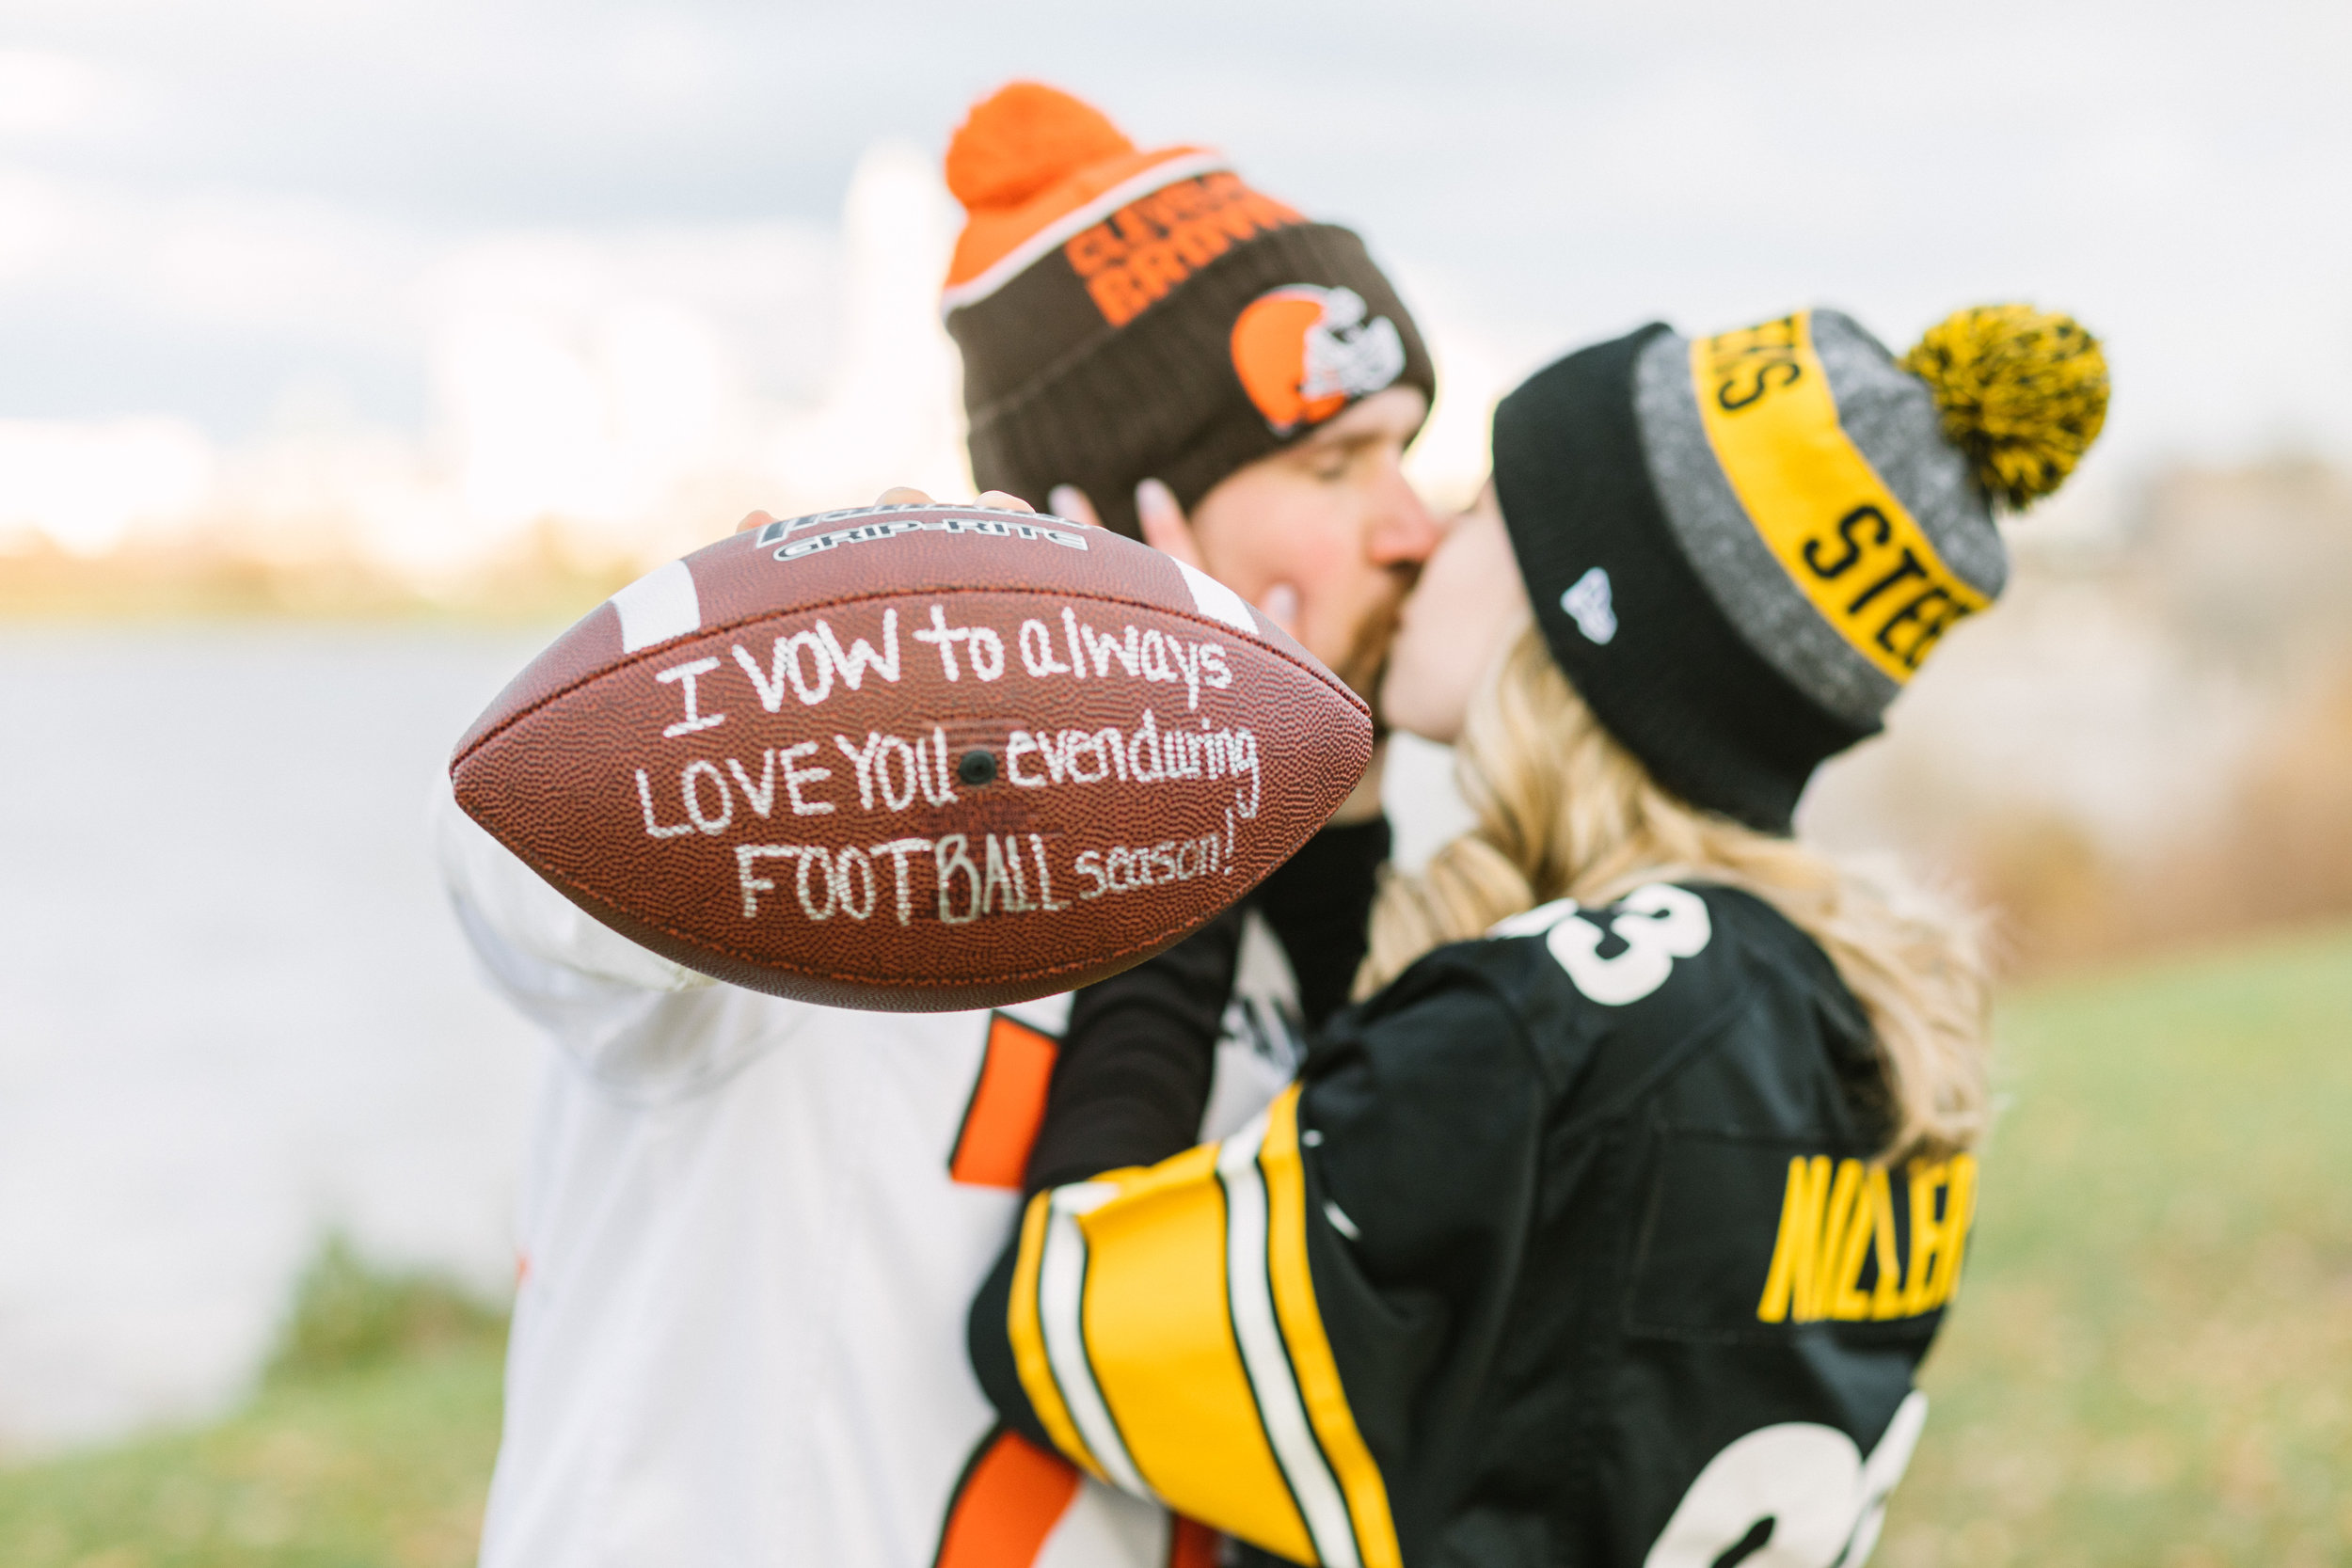 browns and steelers fans engagement photo